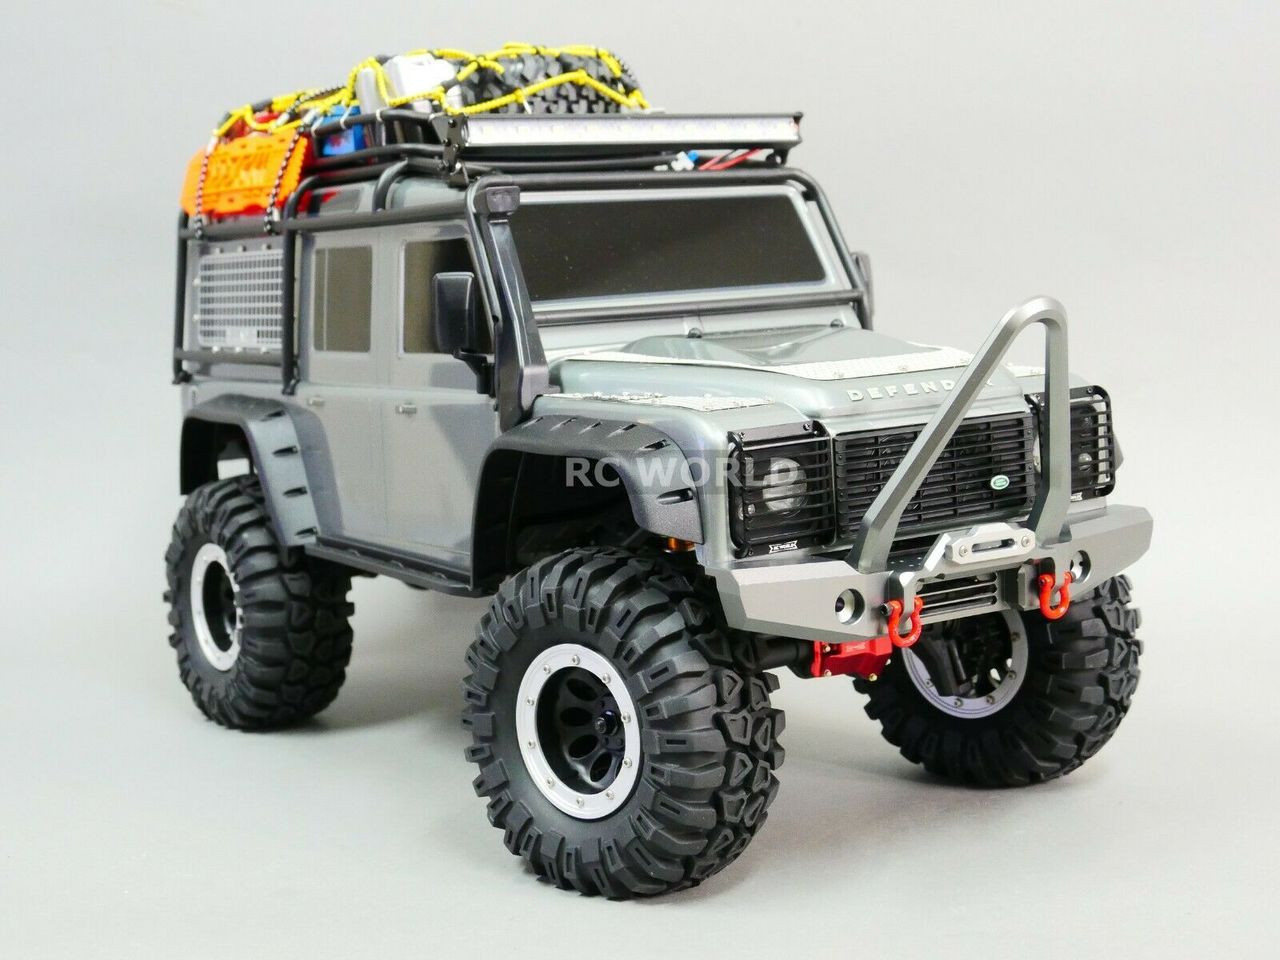 not for Pro 4X4 version T3264BLUE Evolution-5 Rear Lower Arm for Traxxas Slayer